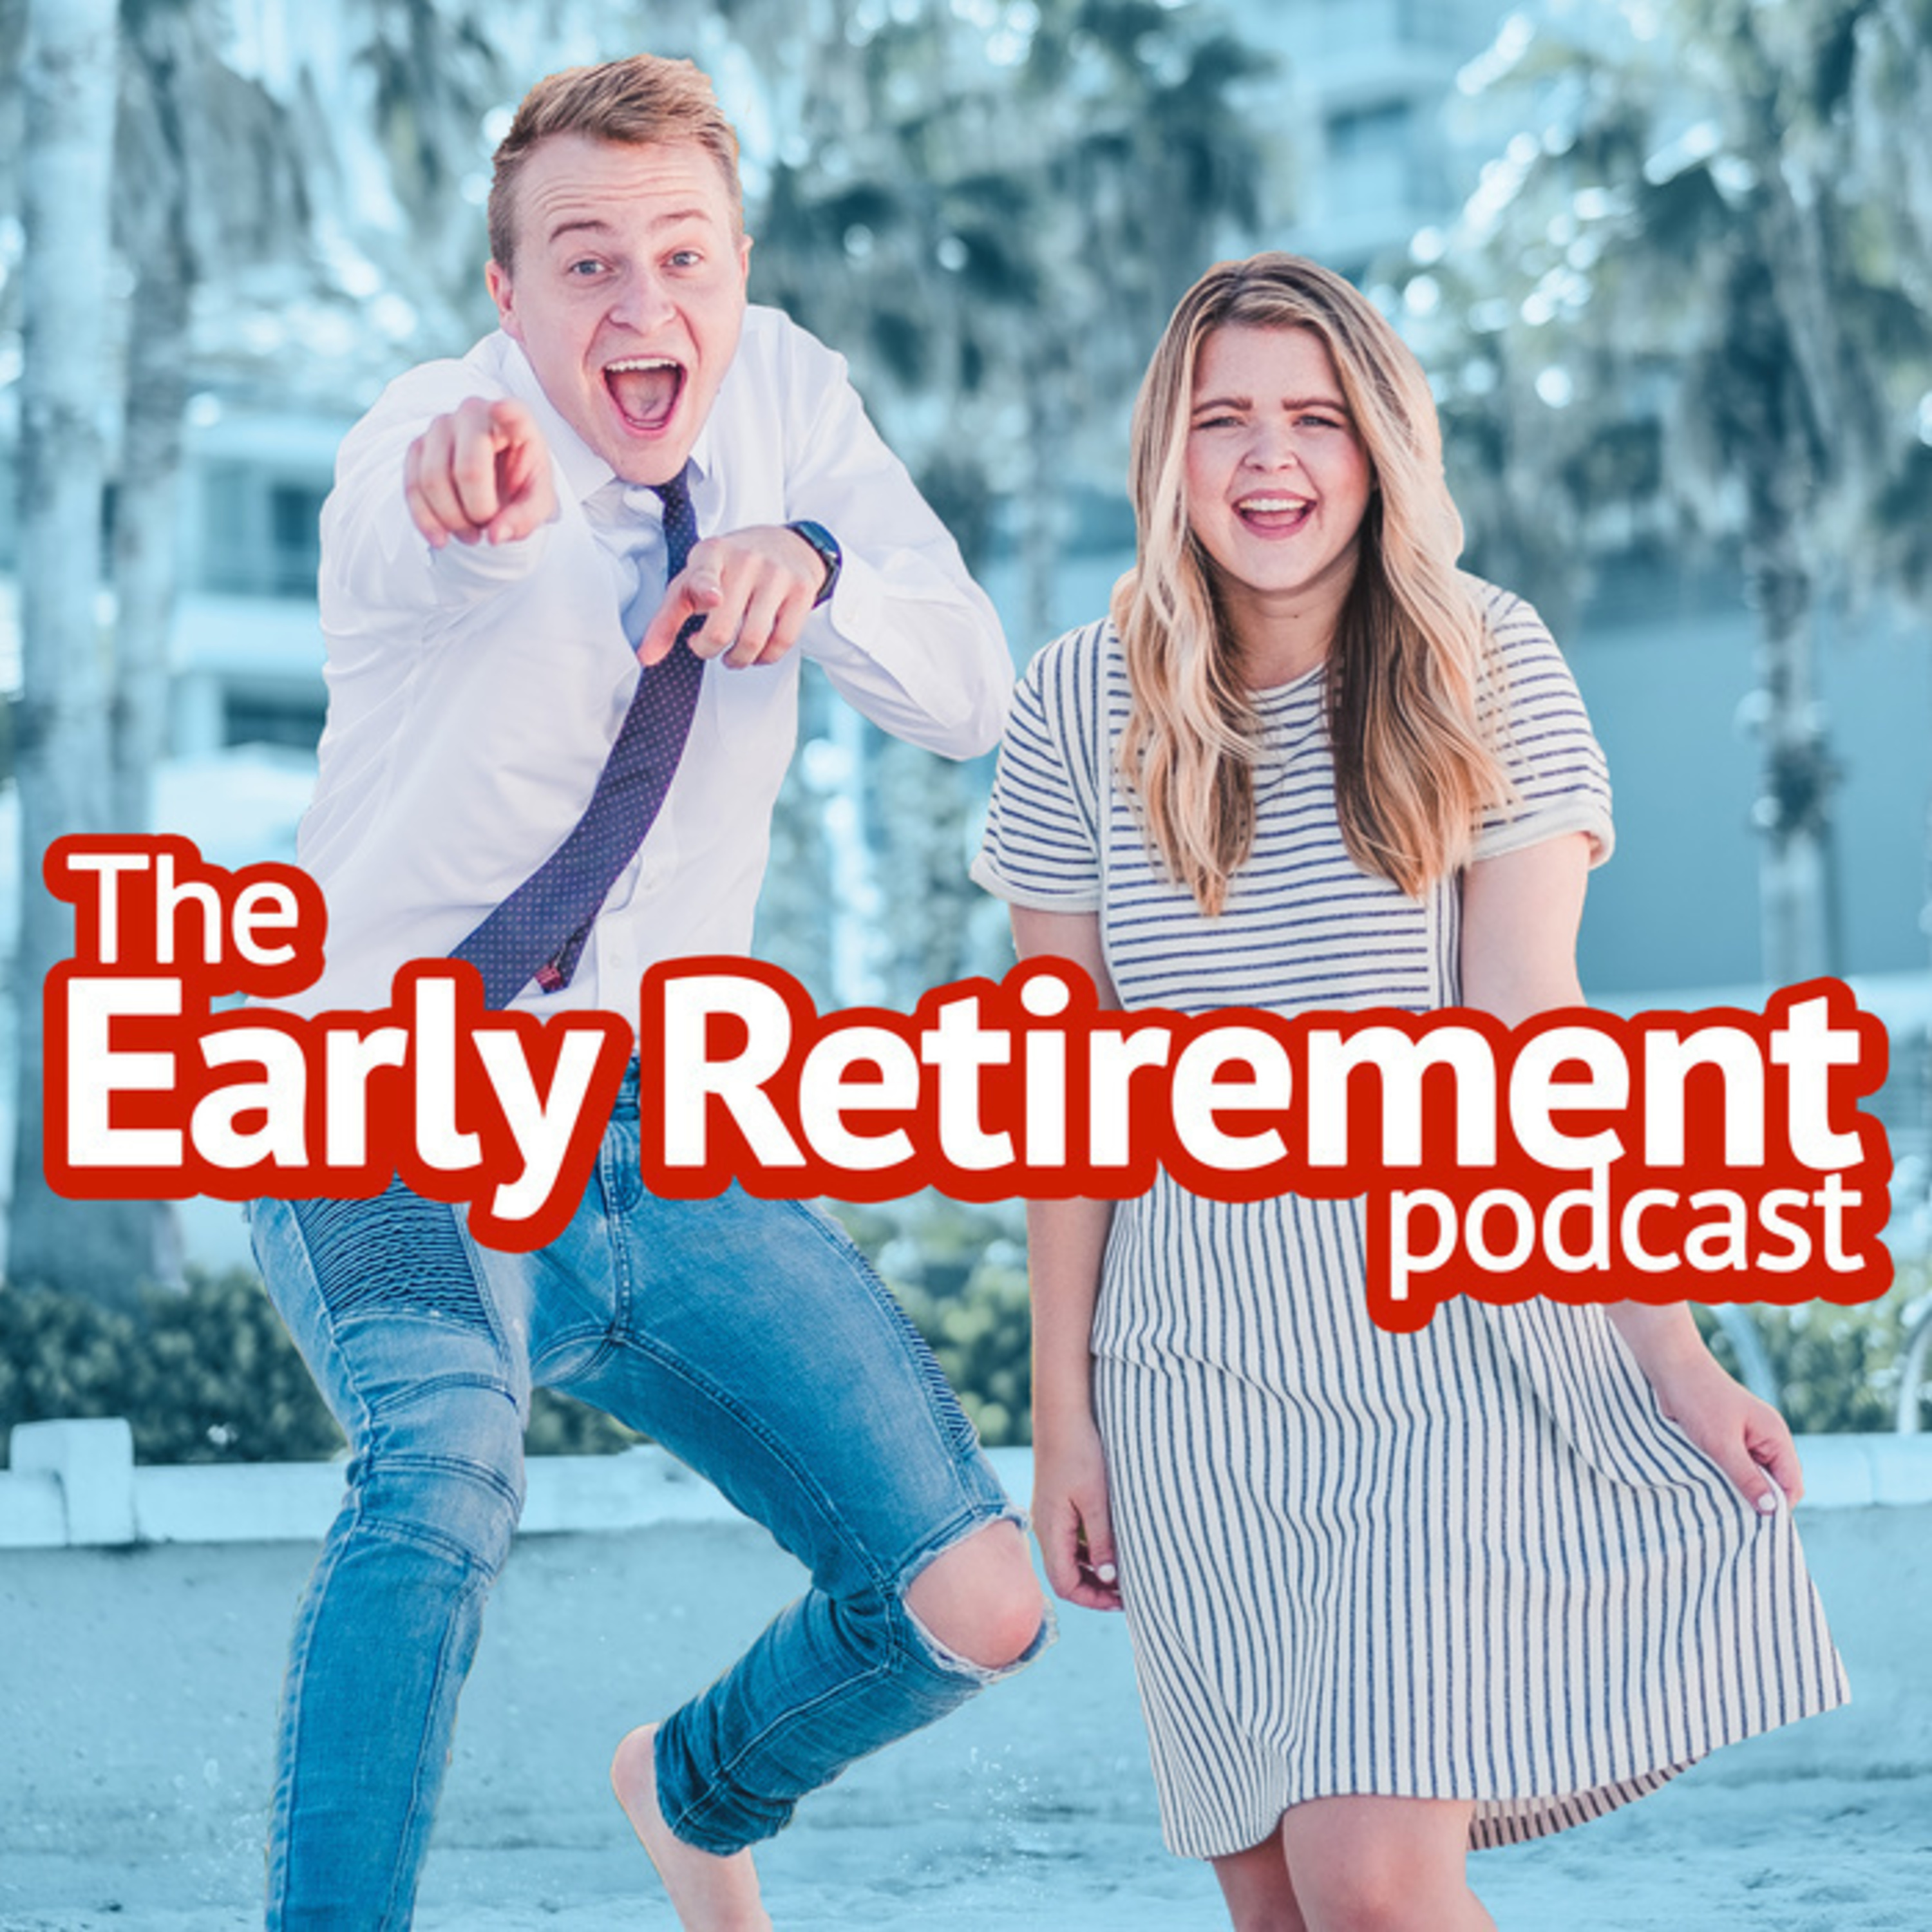 The Early Retirement Podcast